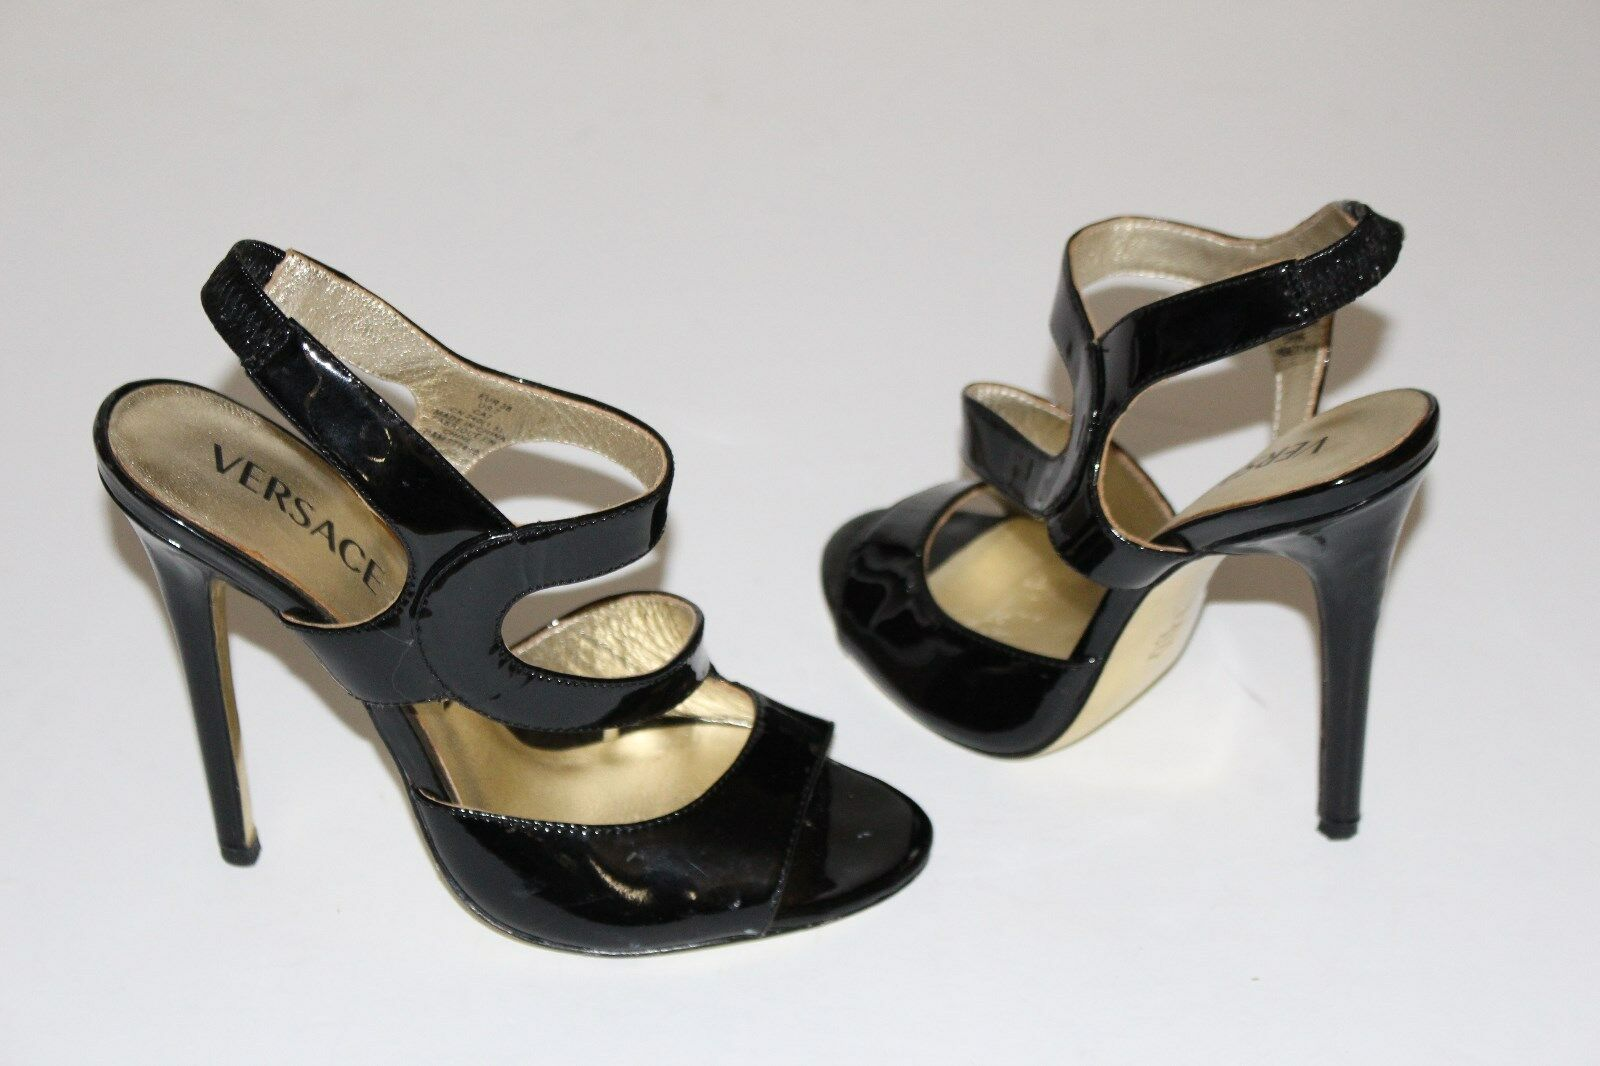 Versace for H&M 7 Black Patent Patent Patent Strappy Sandals 4.5  Heels gold Leather Soles 38 507aac